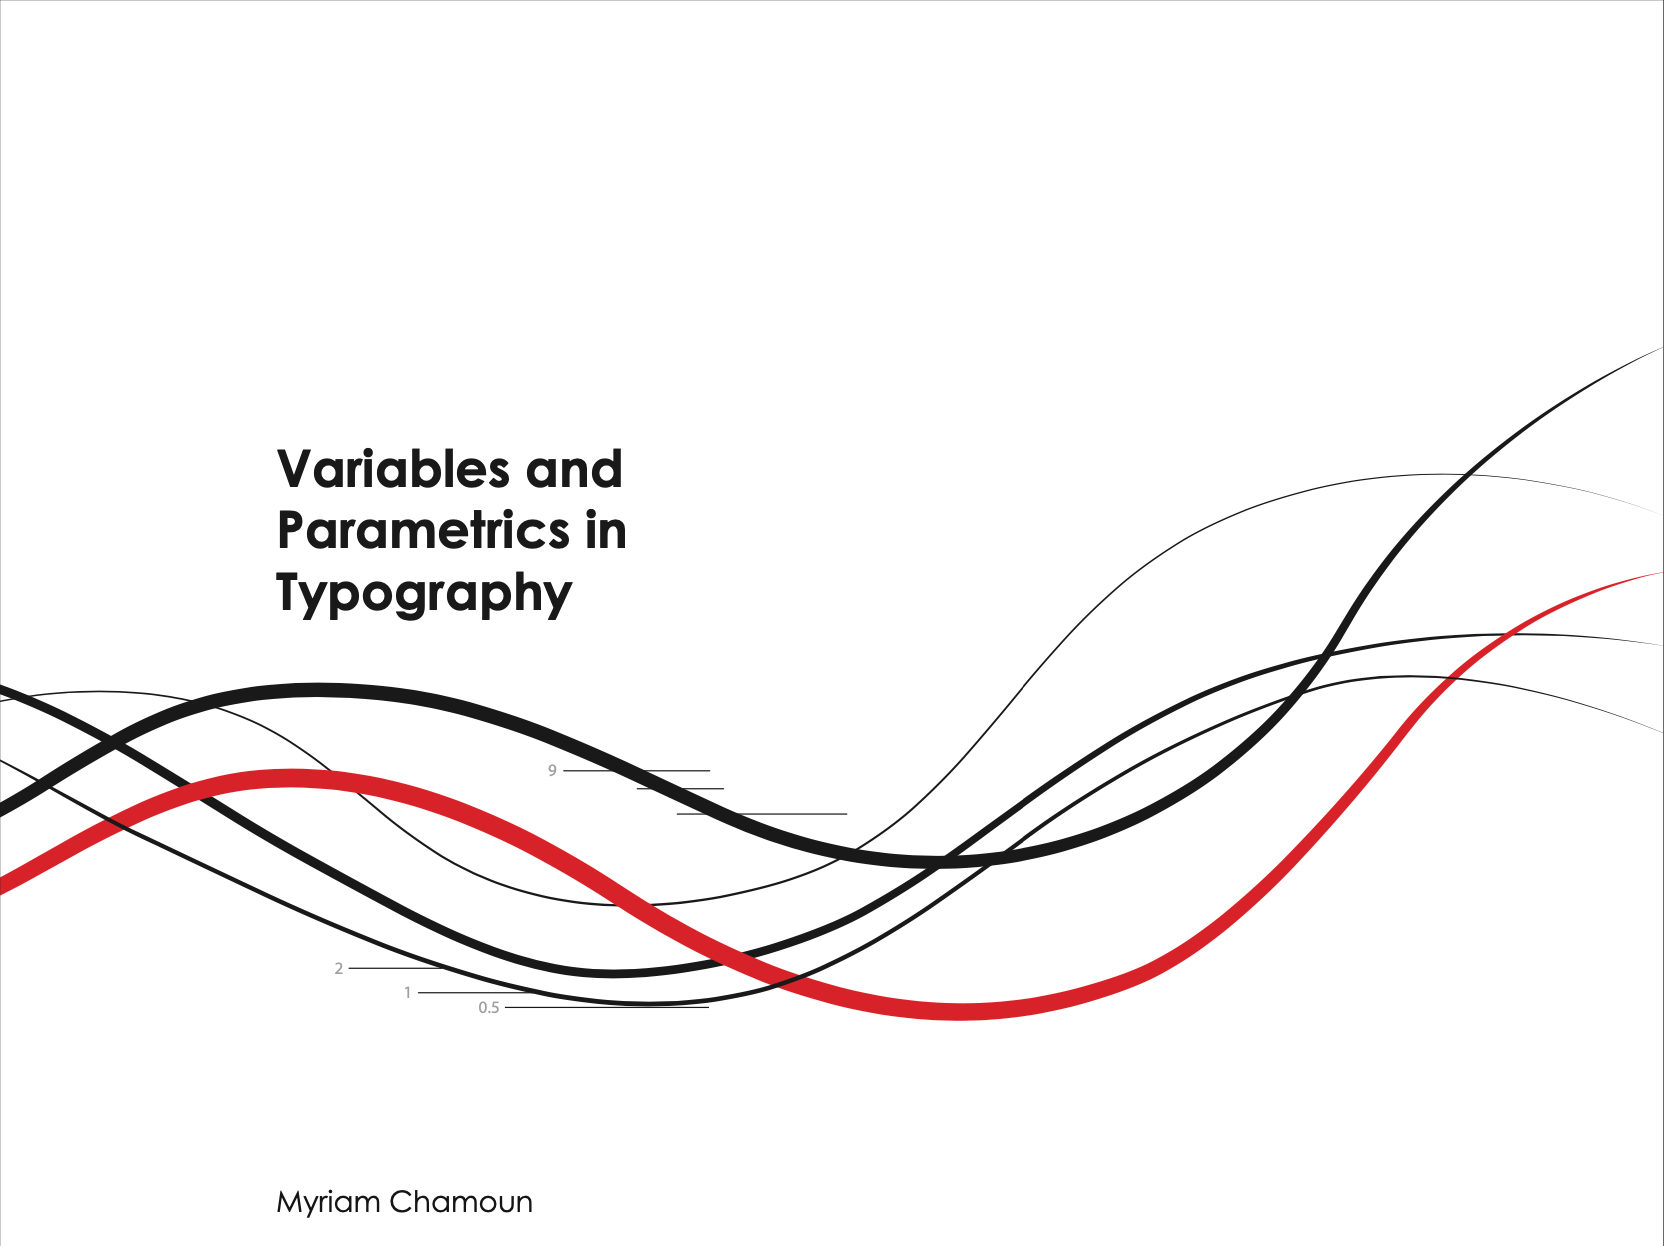 Variables and Parametrics in Typography.